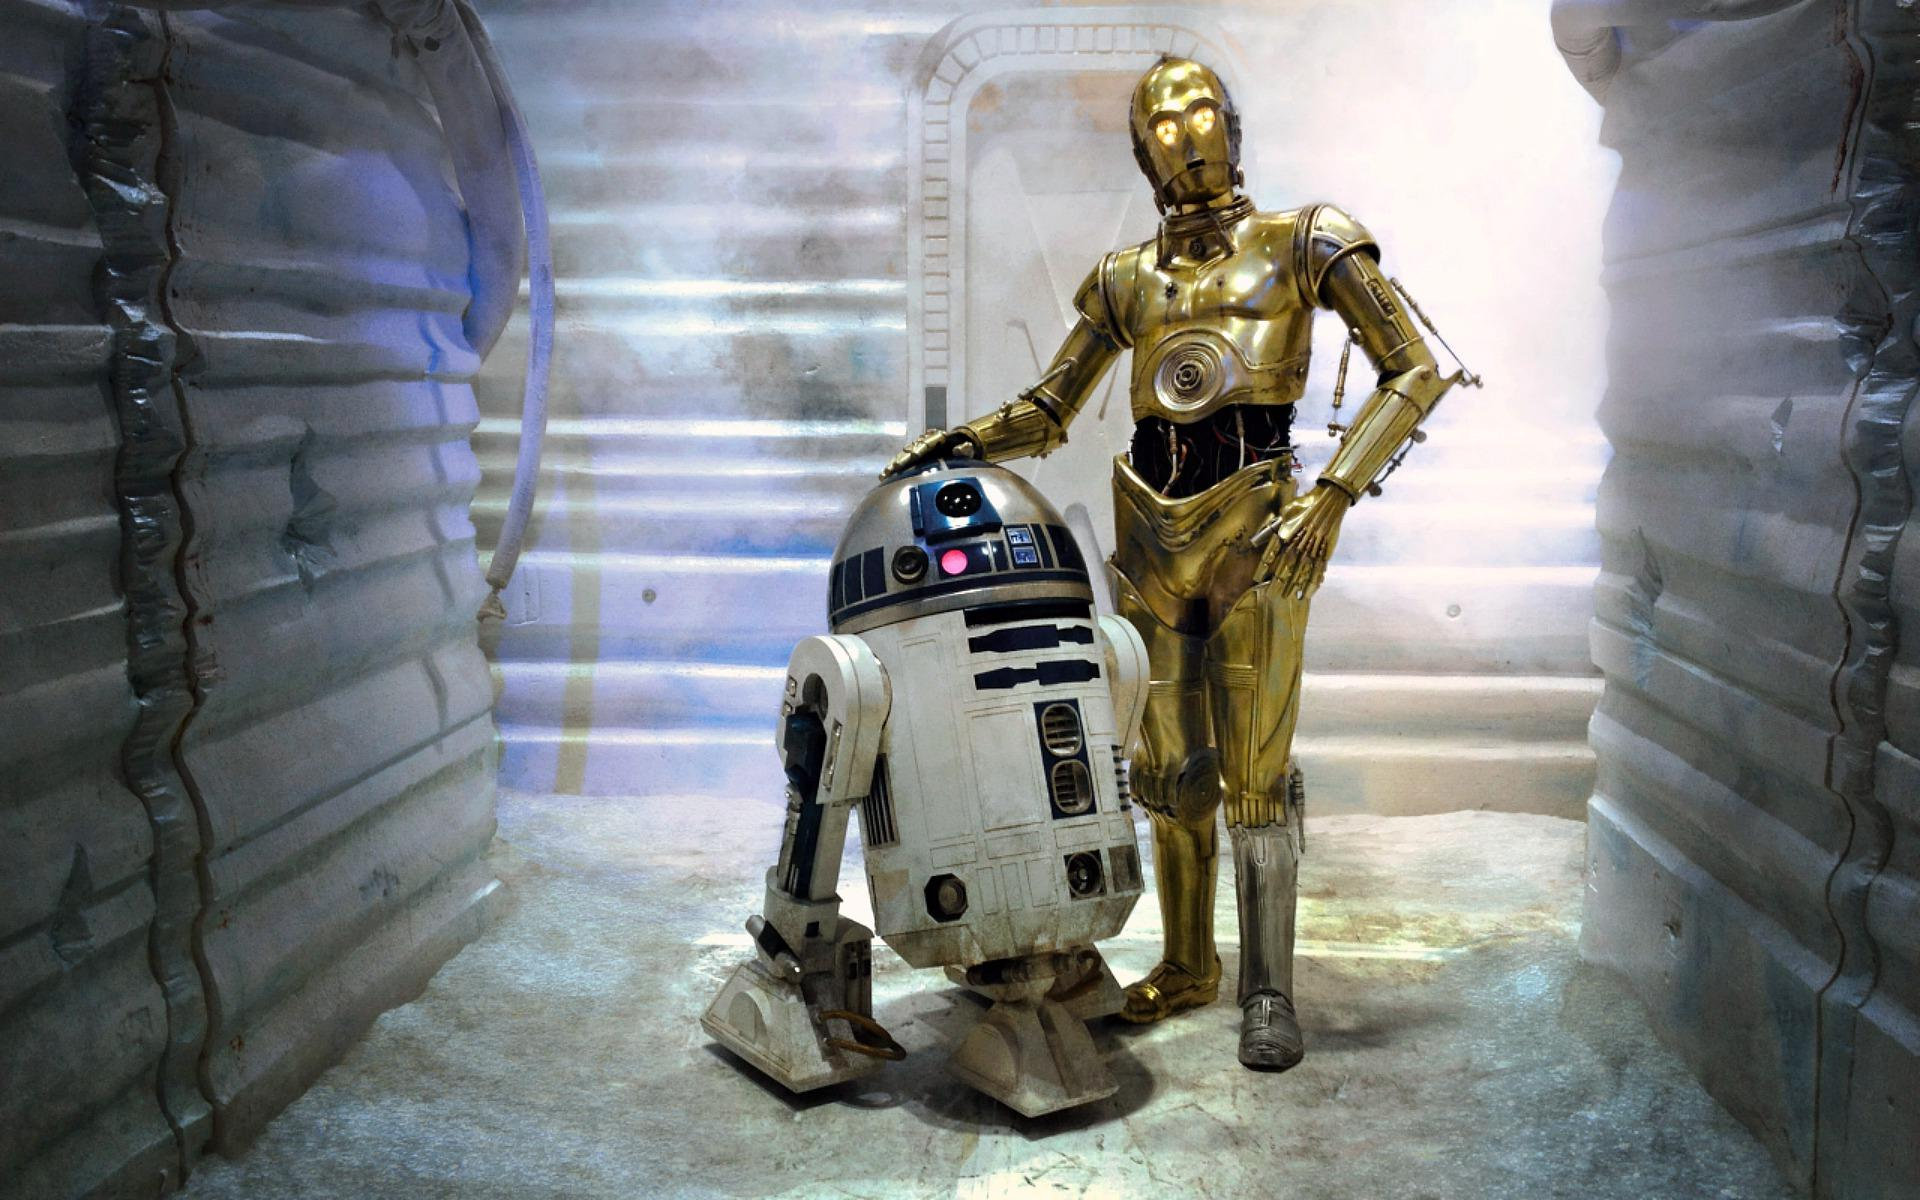 R2-D2 & C-3PO Best Friends - 1920x1200 - Full HD 16/10 - Wallpaper